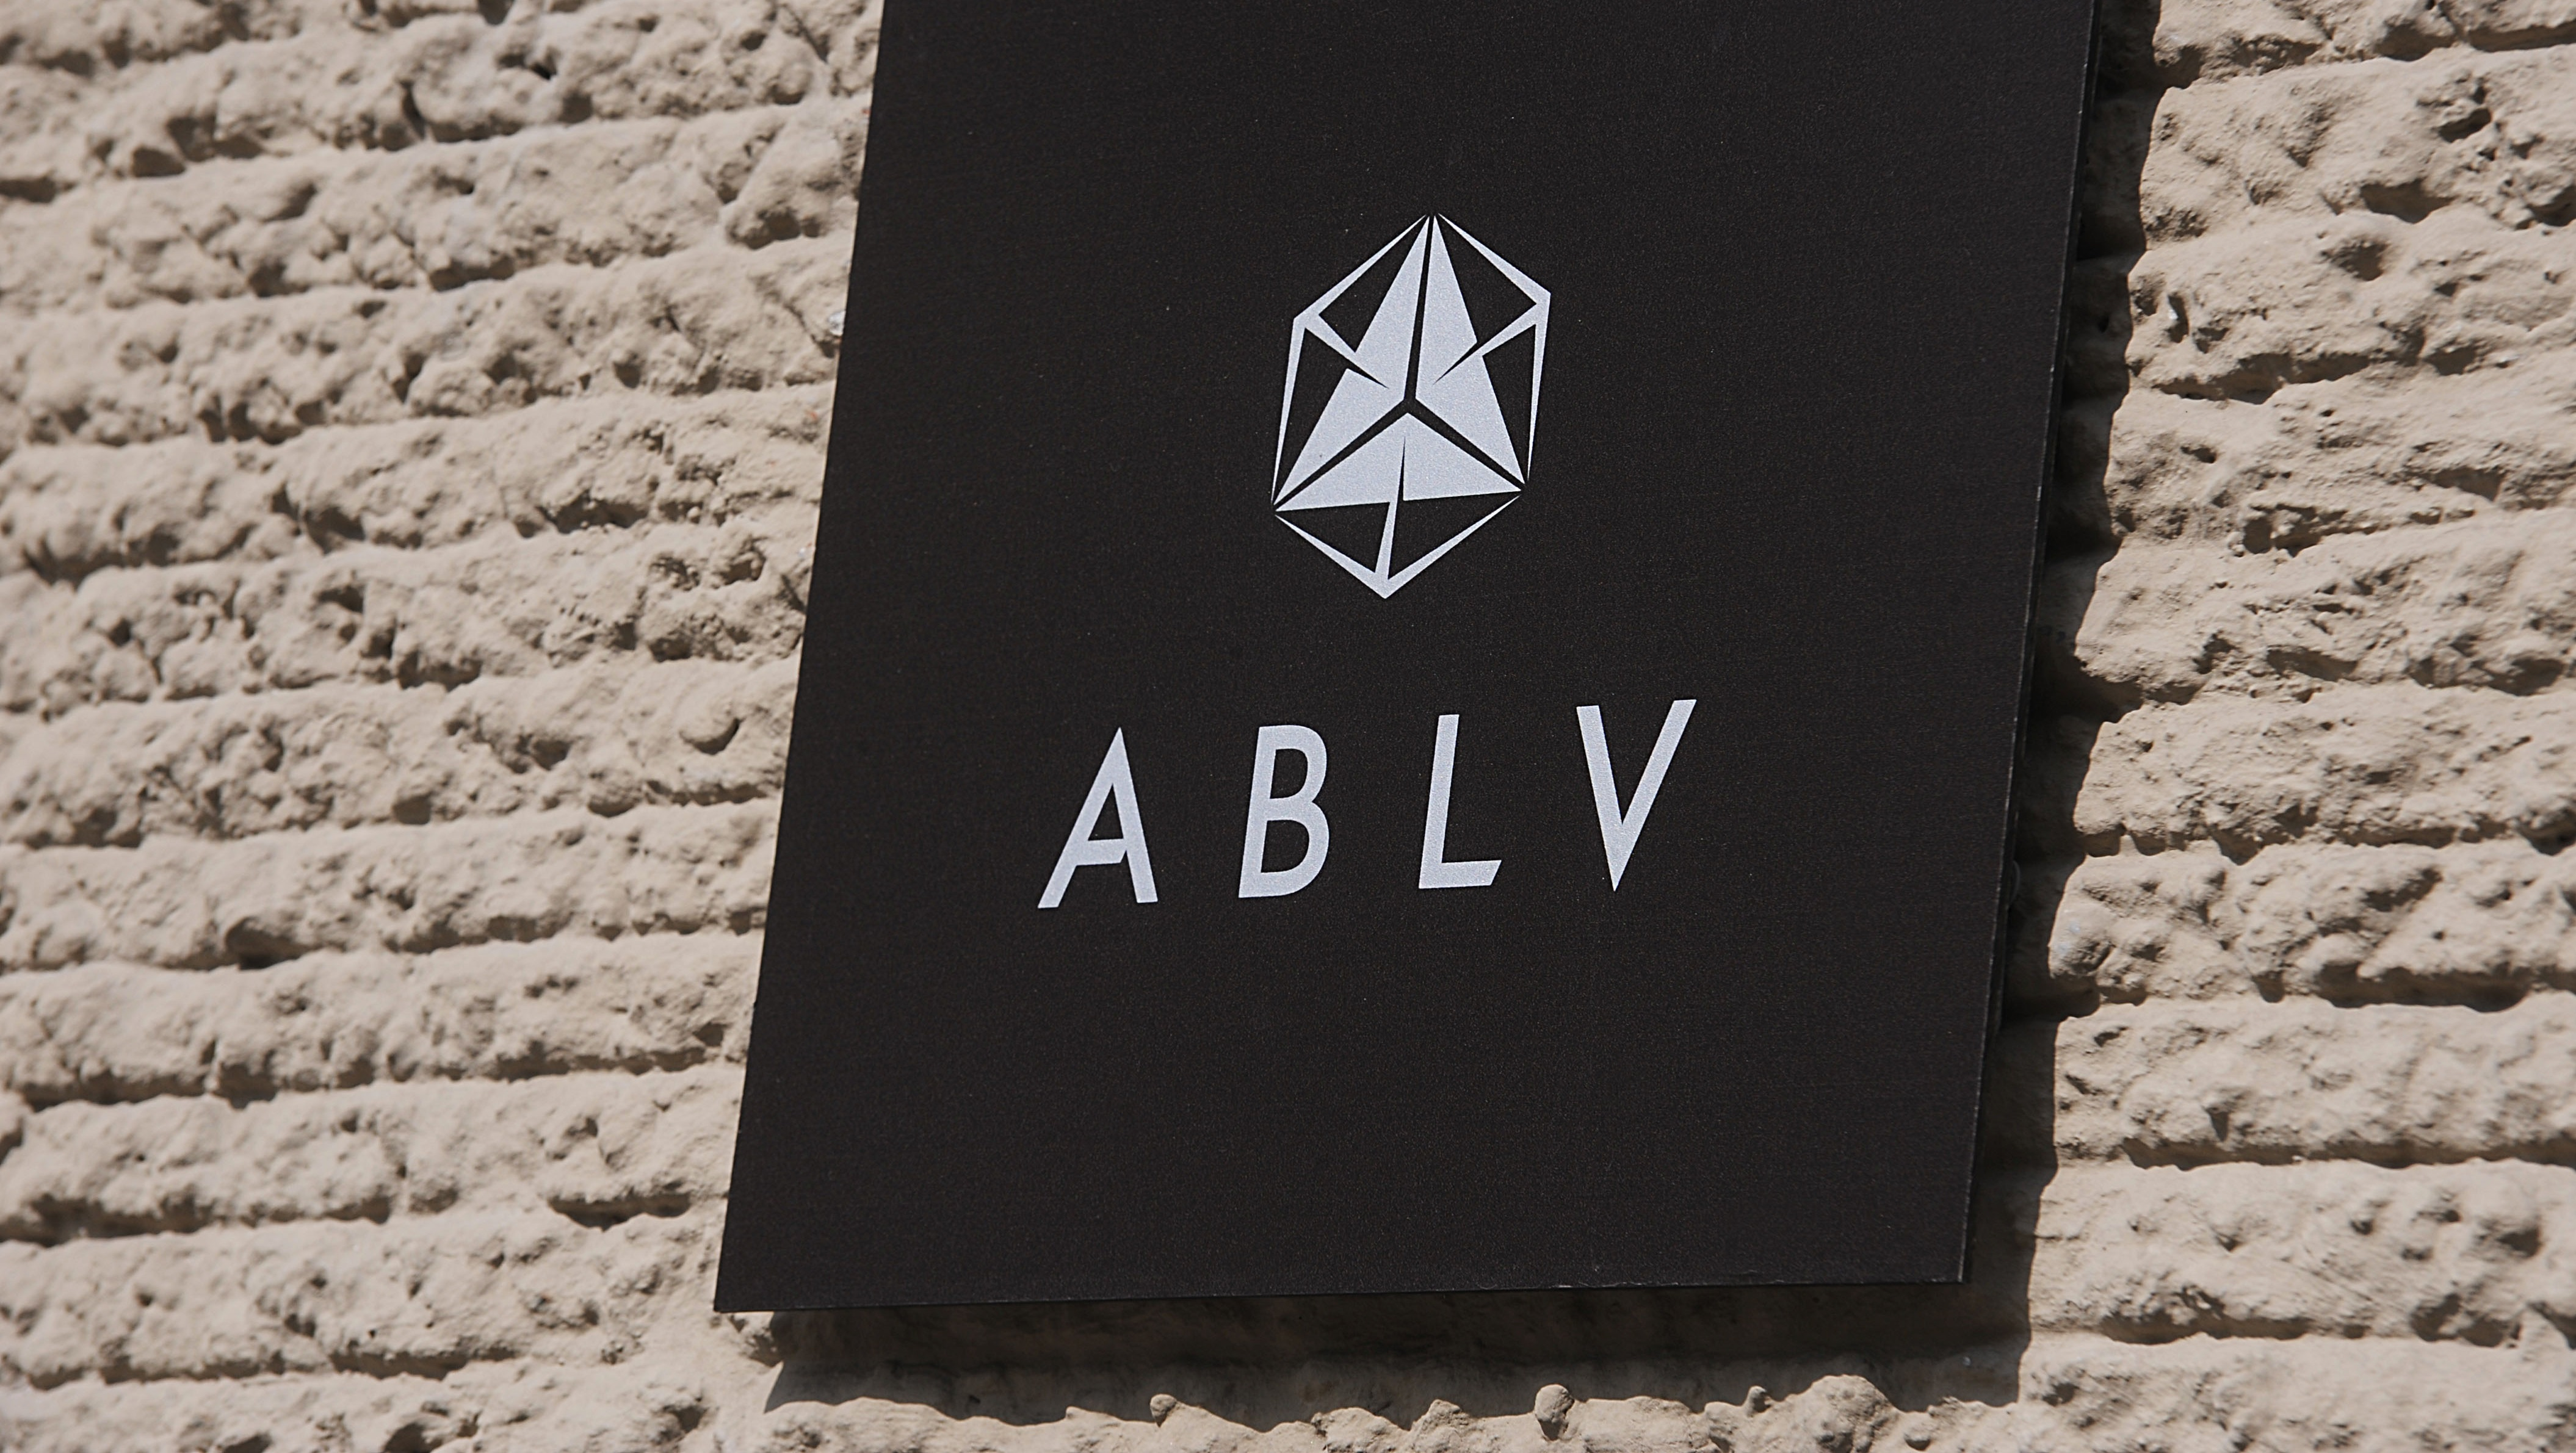 Luxembourg arm of Latvia's ABLV bank enters administration